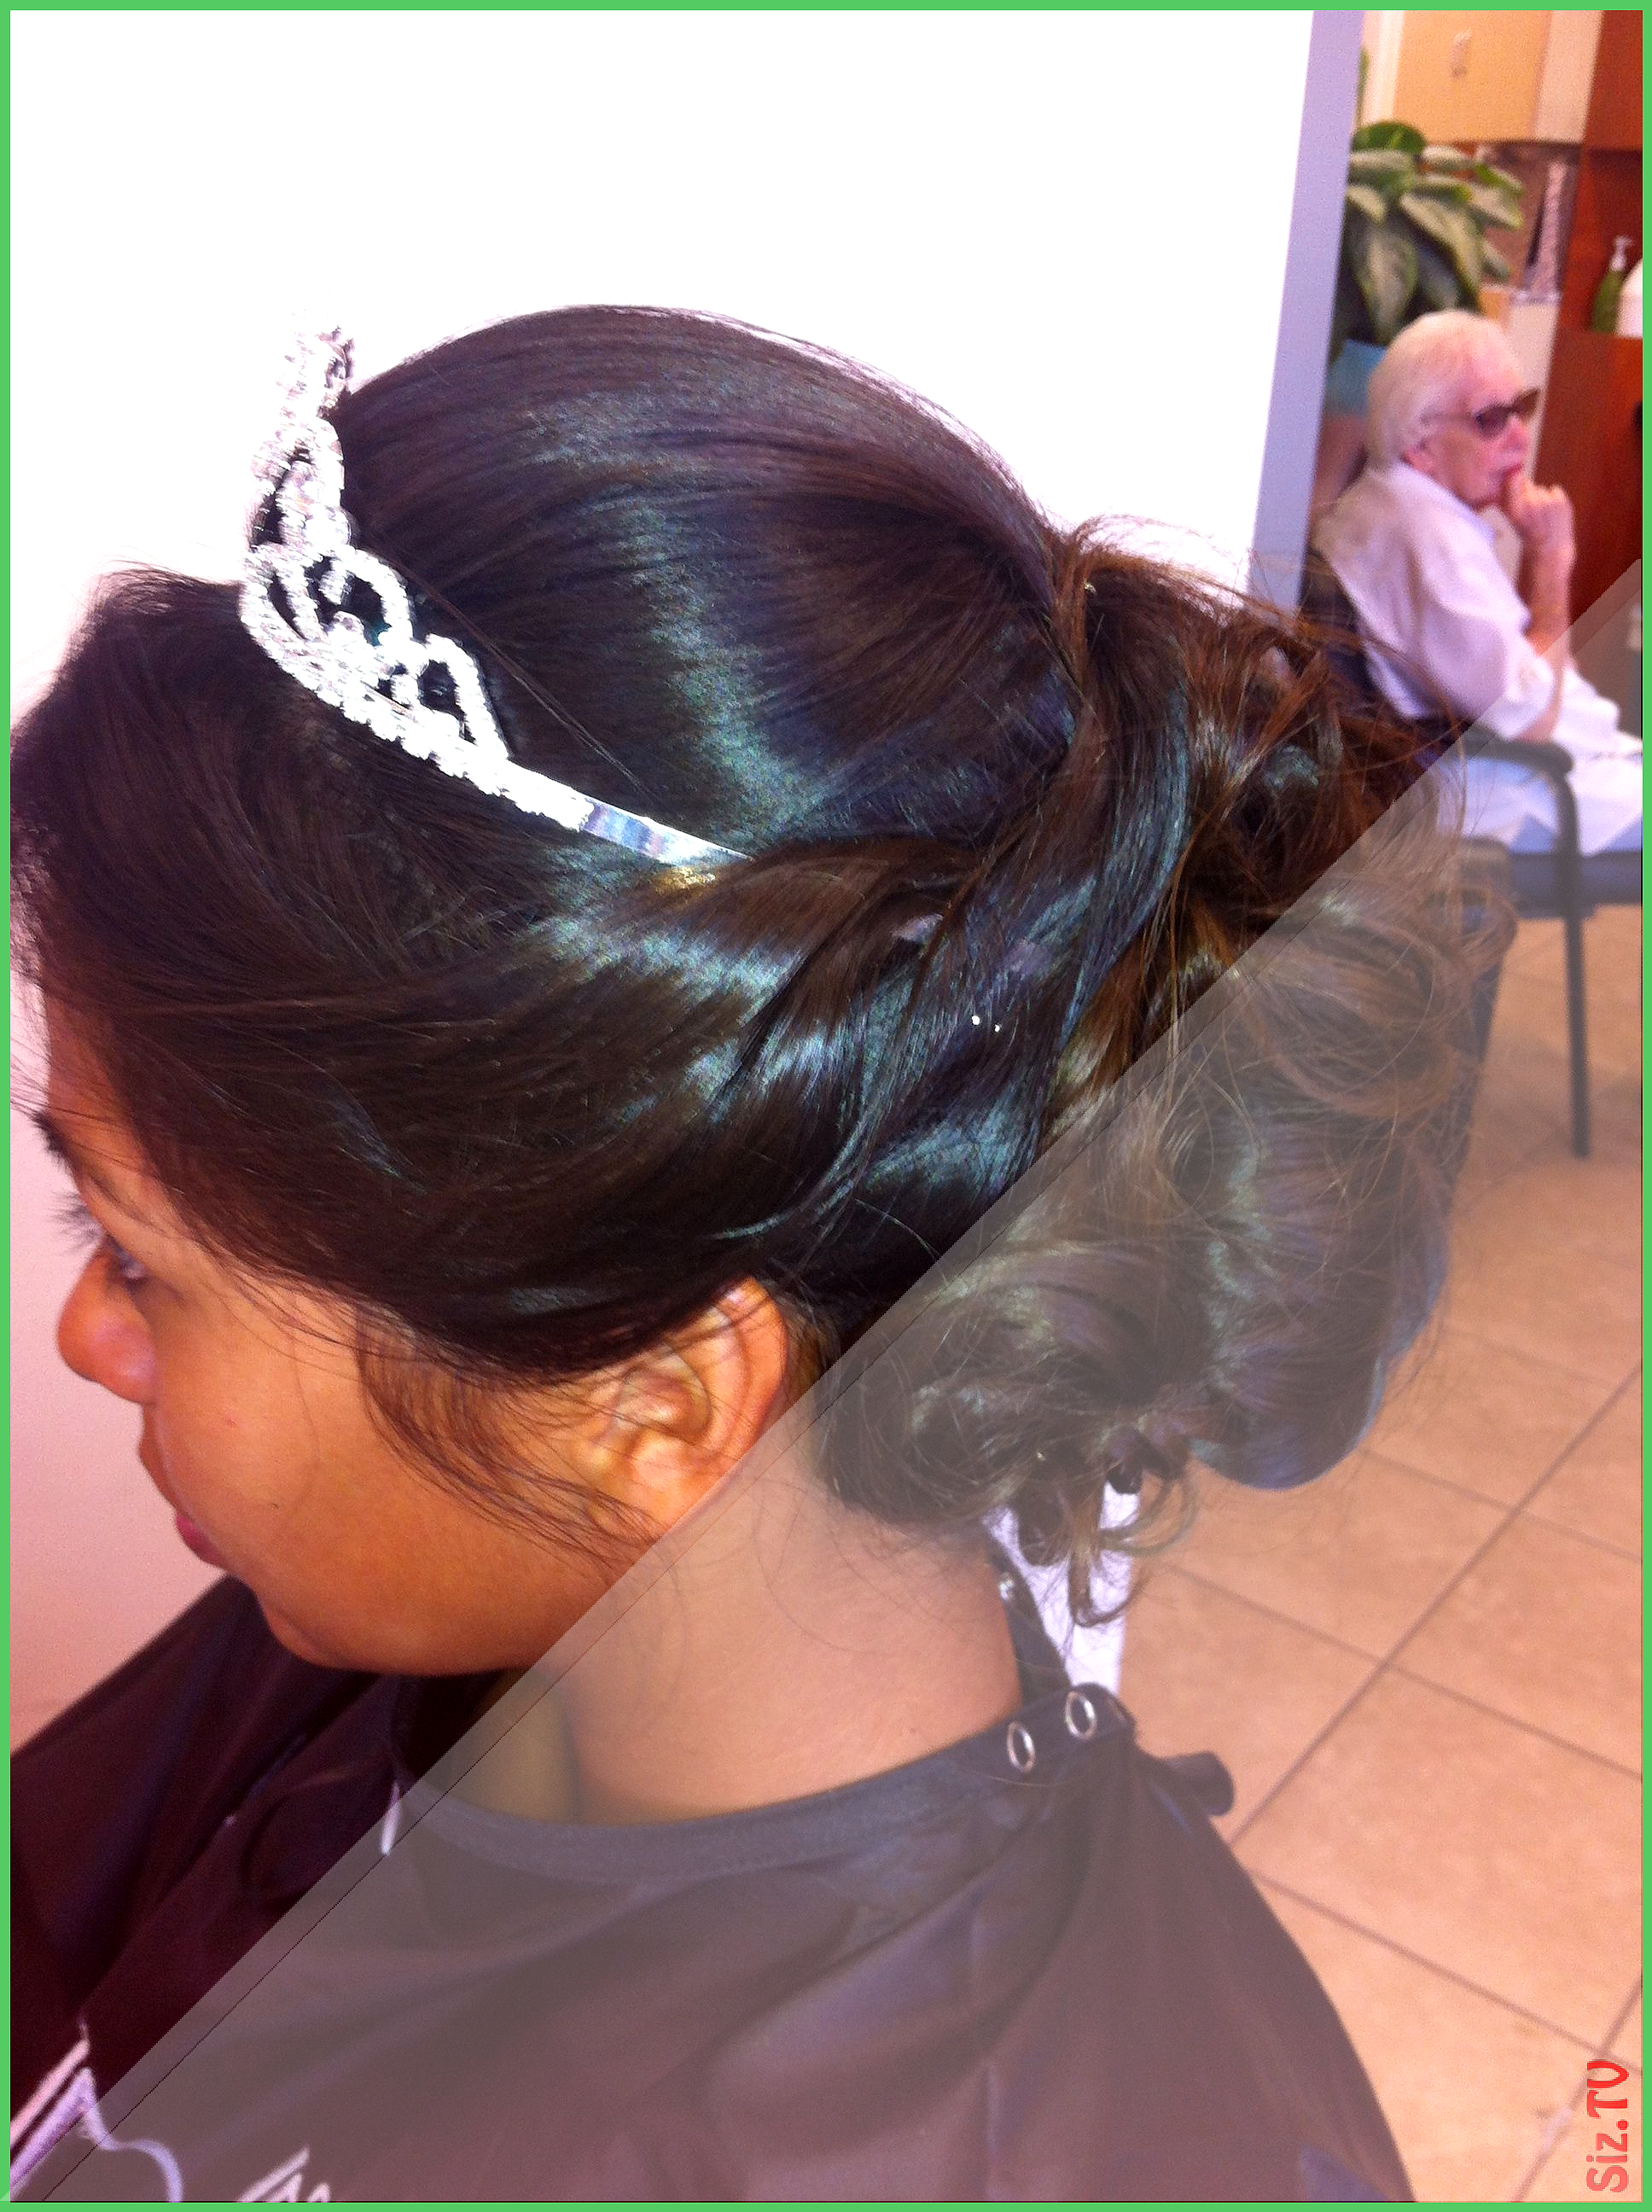 Beautiful Sweet 16 Updo Done By Kristi P Hairstyles Hair Styles Bridemaidshair Beautiful Sweet 16 Updo Done By Hair Styles Bridemaids Hairstyles Beautiful Hair